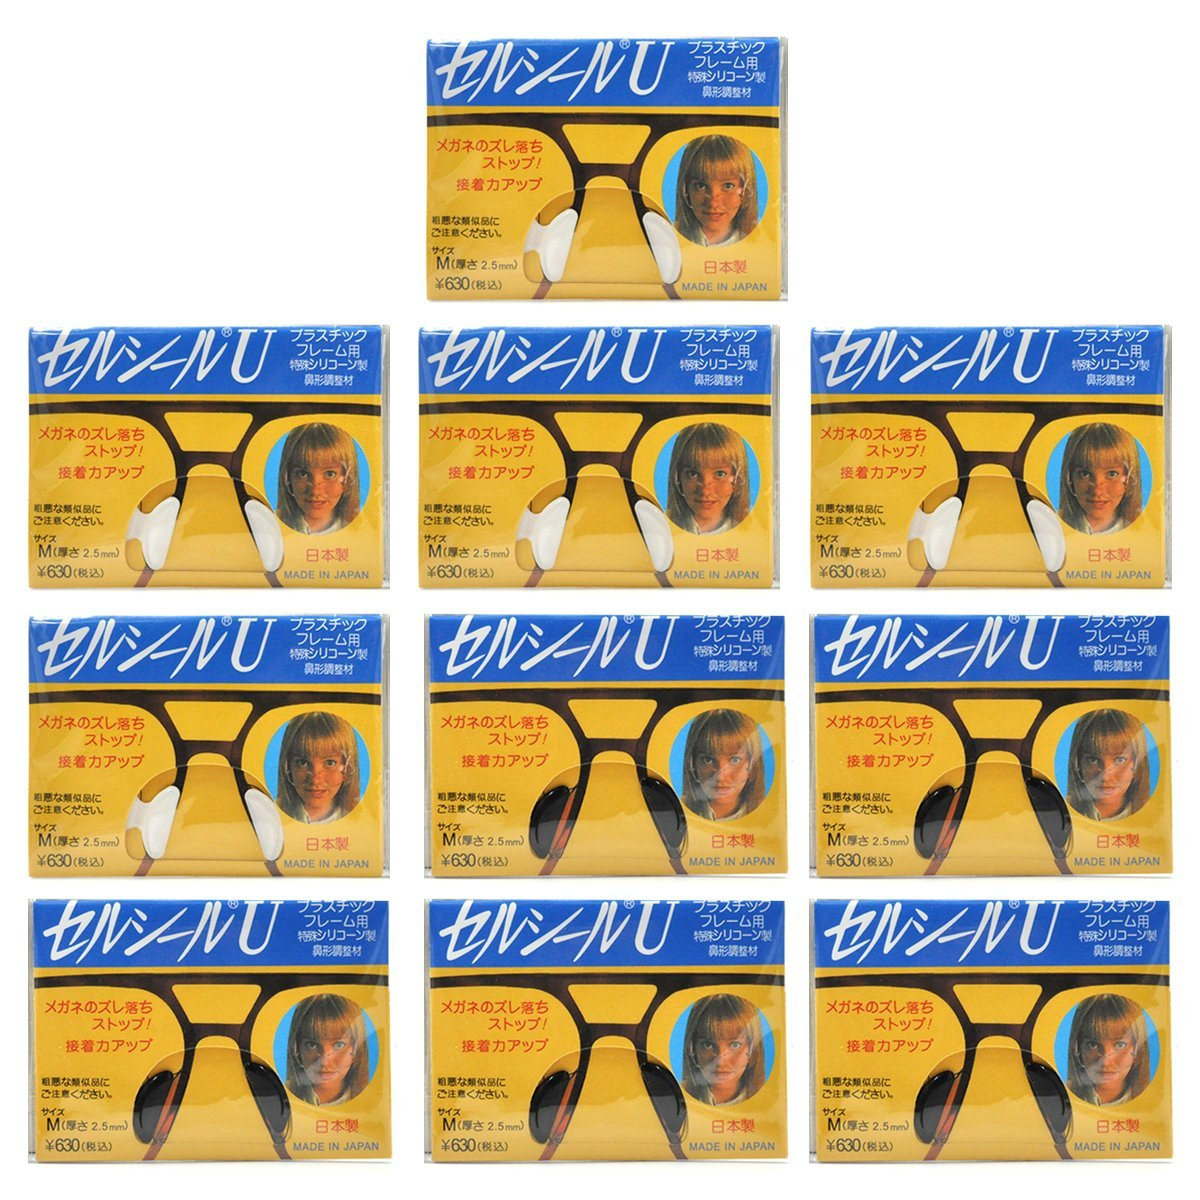 eZAKKA Silicone Nose Pads 10 Pairs 2.5mm Anti-Slip Adhesive Stick on Eyeglass Sunglass Glasses Spectacles Nose Pad, (Black and Transparent)